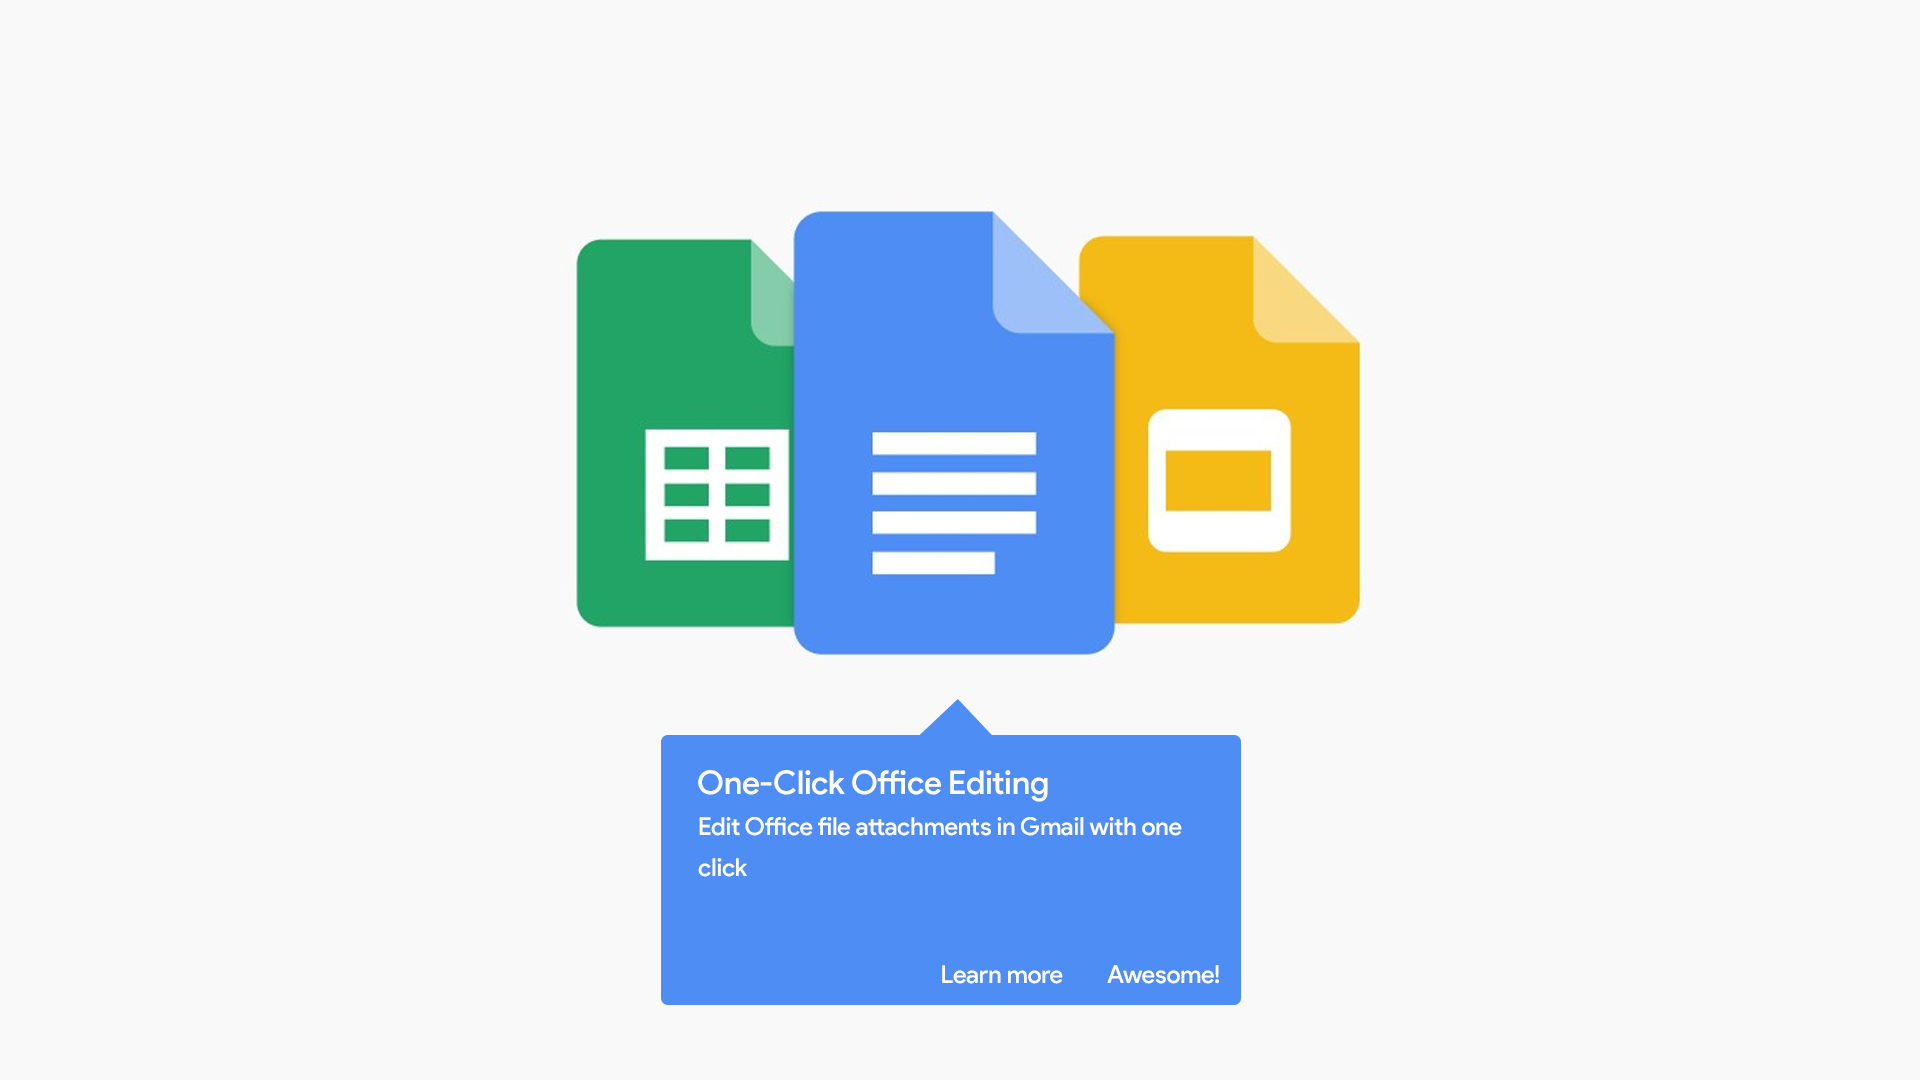 Editing Office files from Gmail attachments will now be simplified to one click